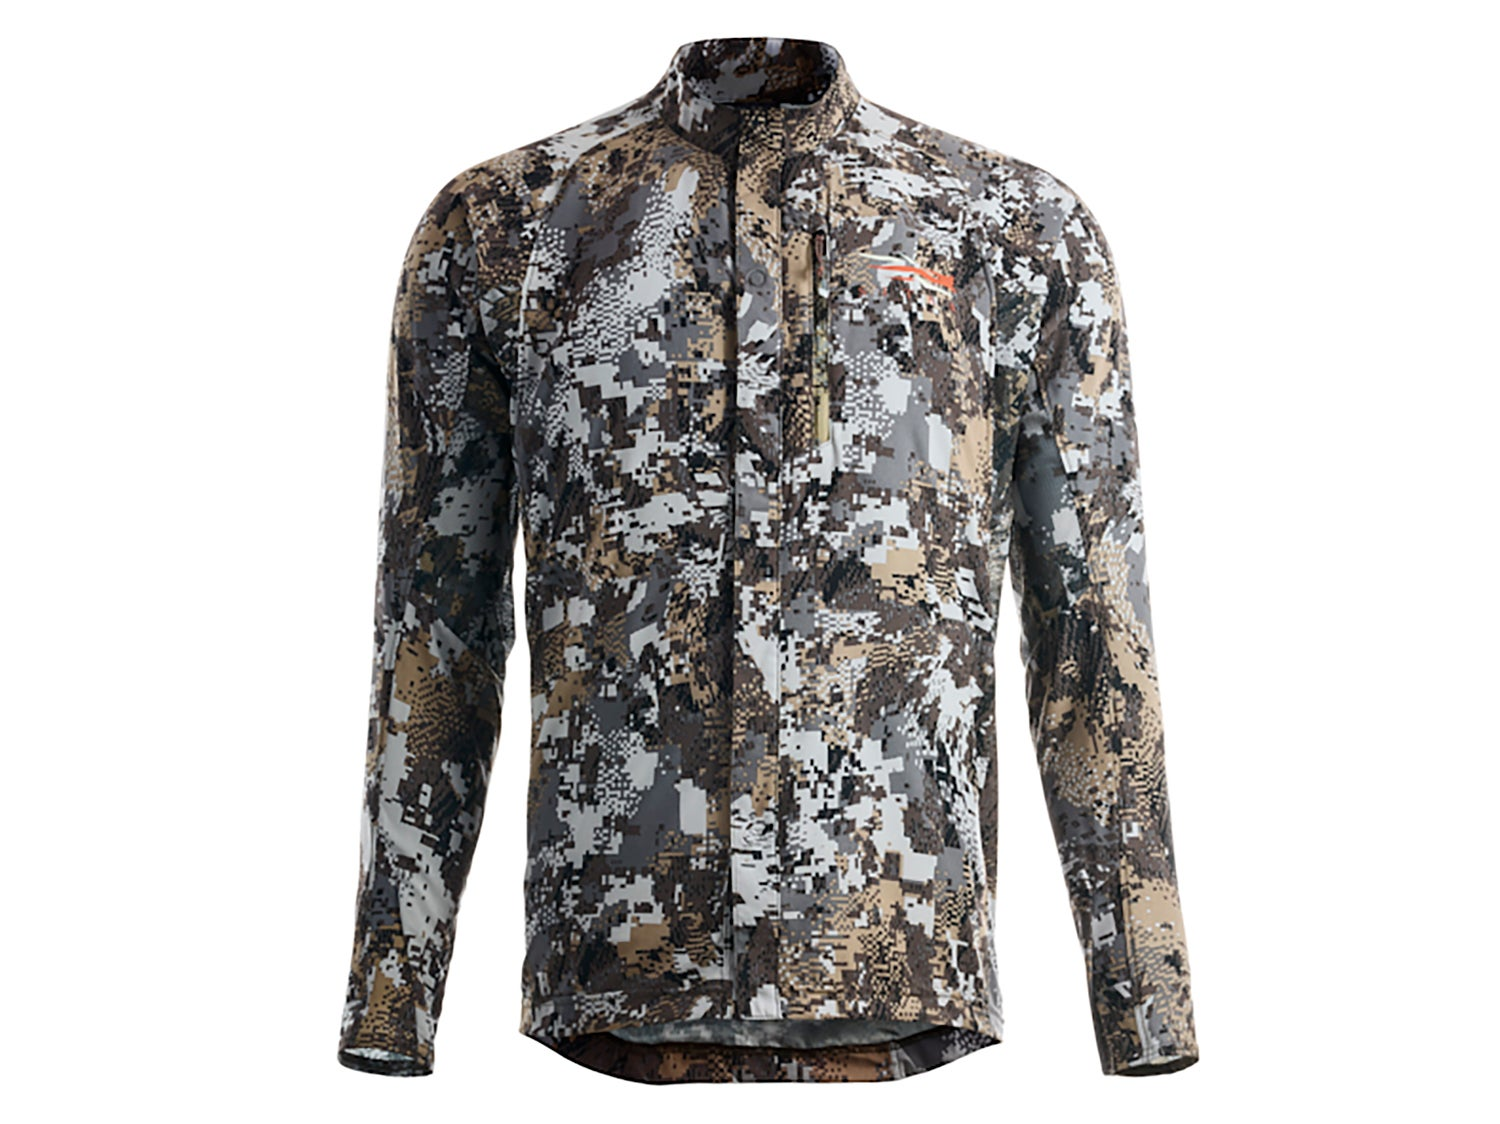 A Sitka camoflauge jacket on a white background.